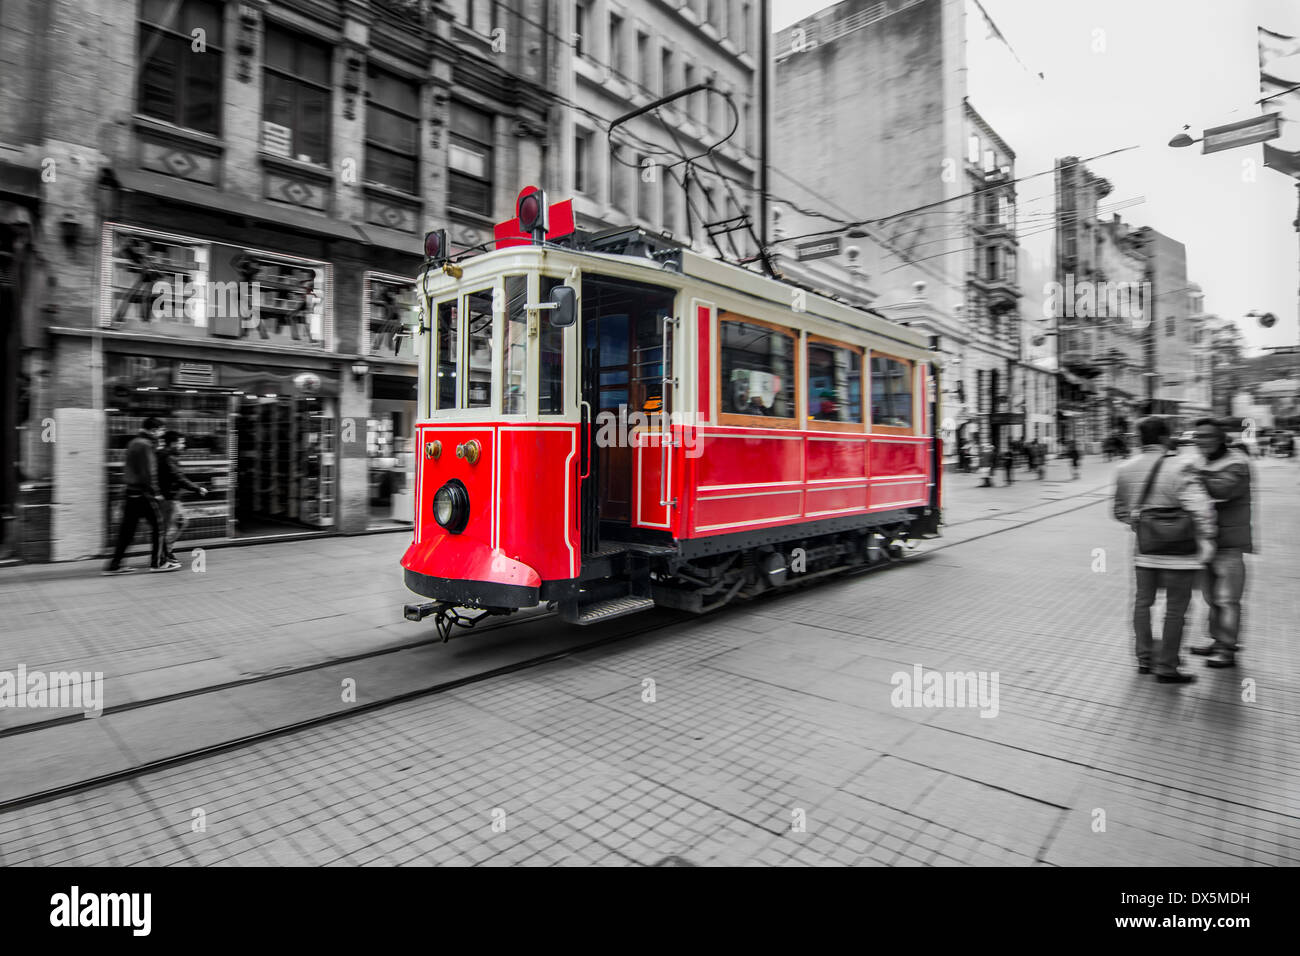 Trams passing through Istiklal street. Selective focus. Slow time shutter speed for the panning effect - Stock Image